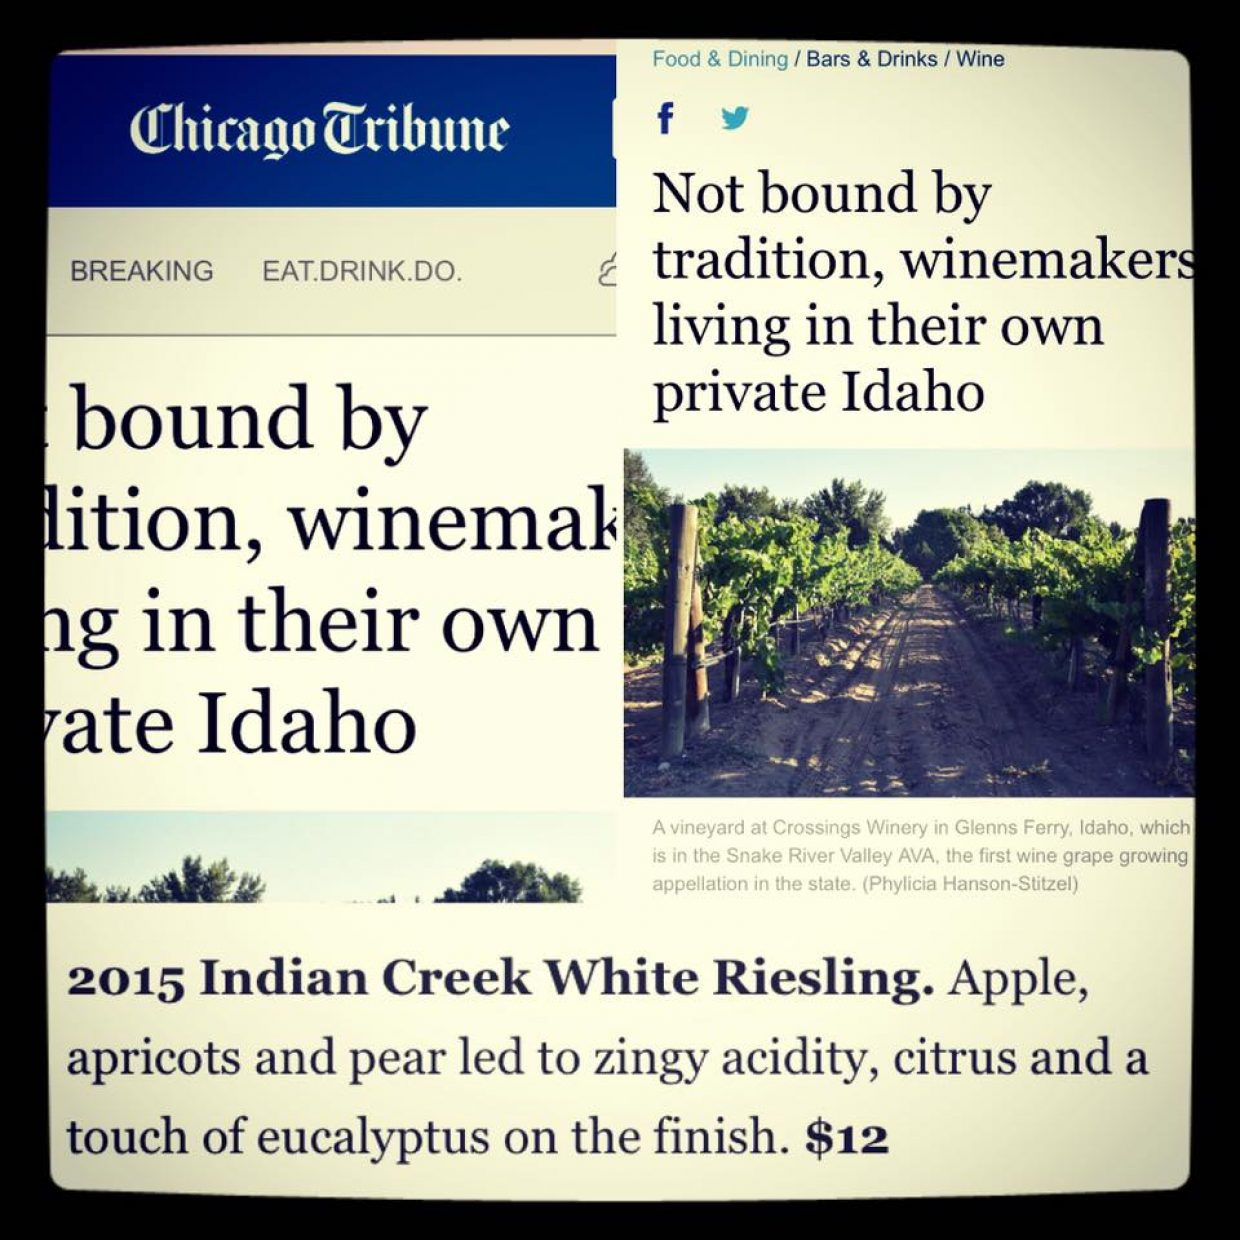 Rave Riesling review from the Chicago Tribune!